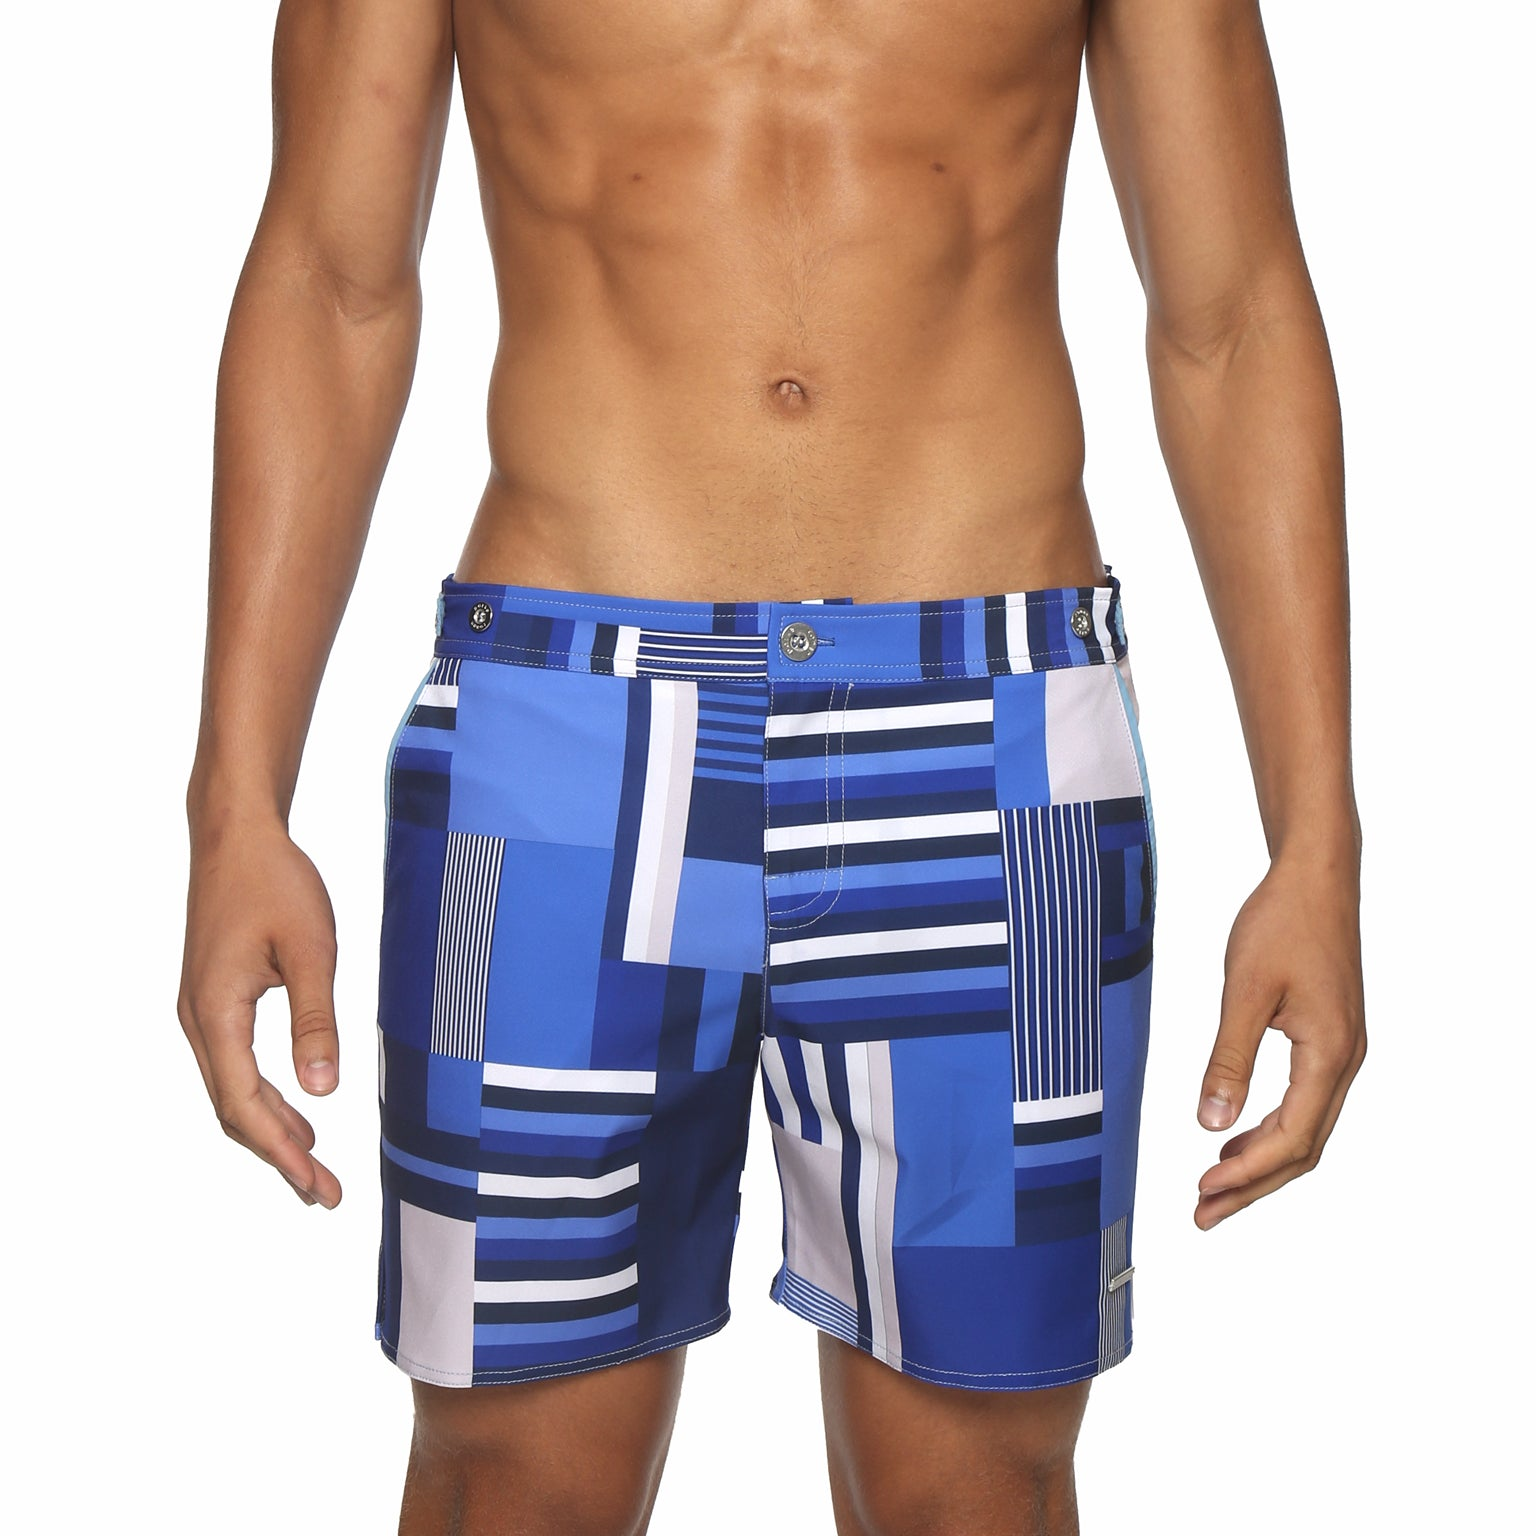 Men's Clothing Precise Summer Beach Men Quick-dry Shorts New Fashion Mens Board Short Solid Color Male Thin Breathable Pockets Zipper Trendy 3 Colors As Effectively As A Fairy Does